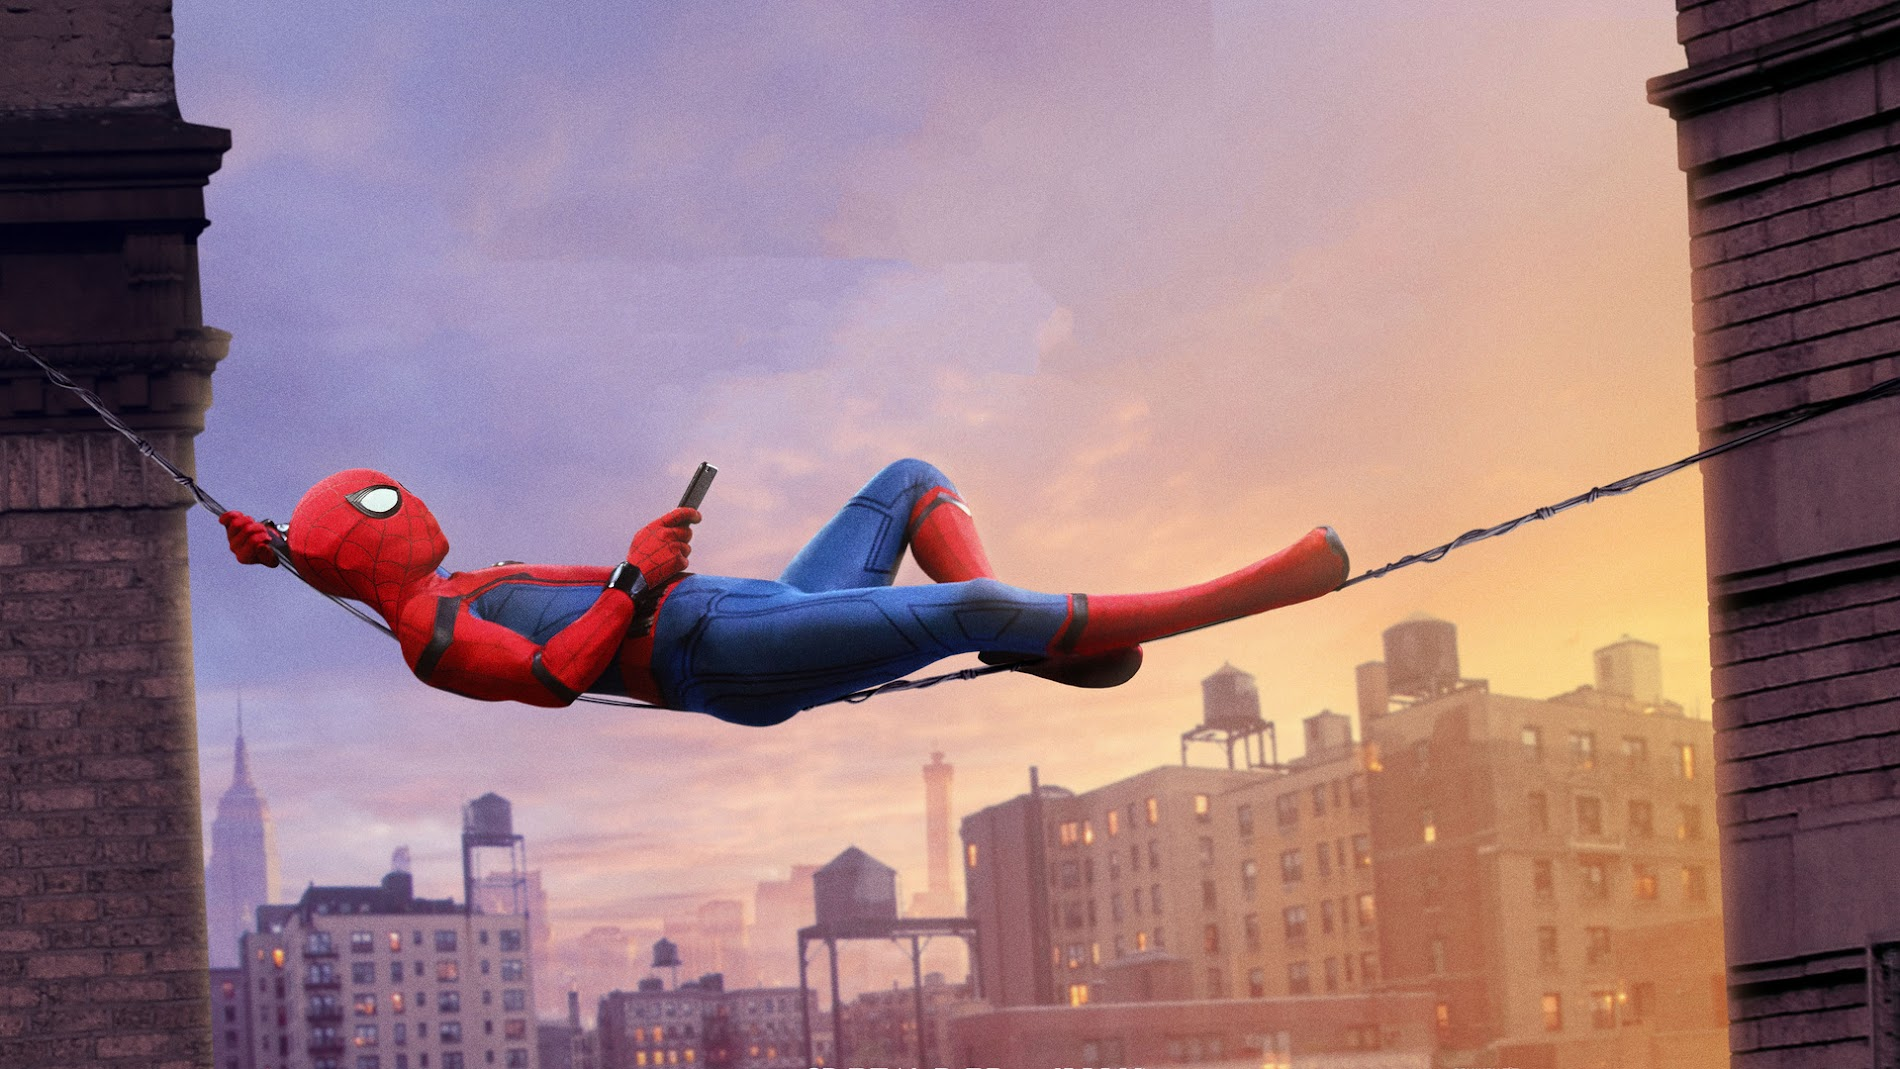 Spiderman 2018 Wallpaper